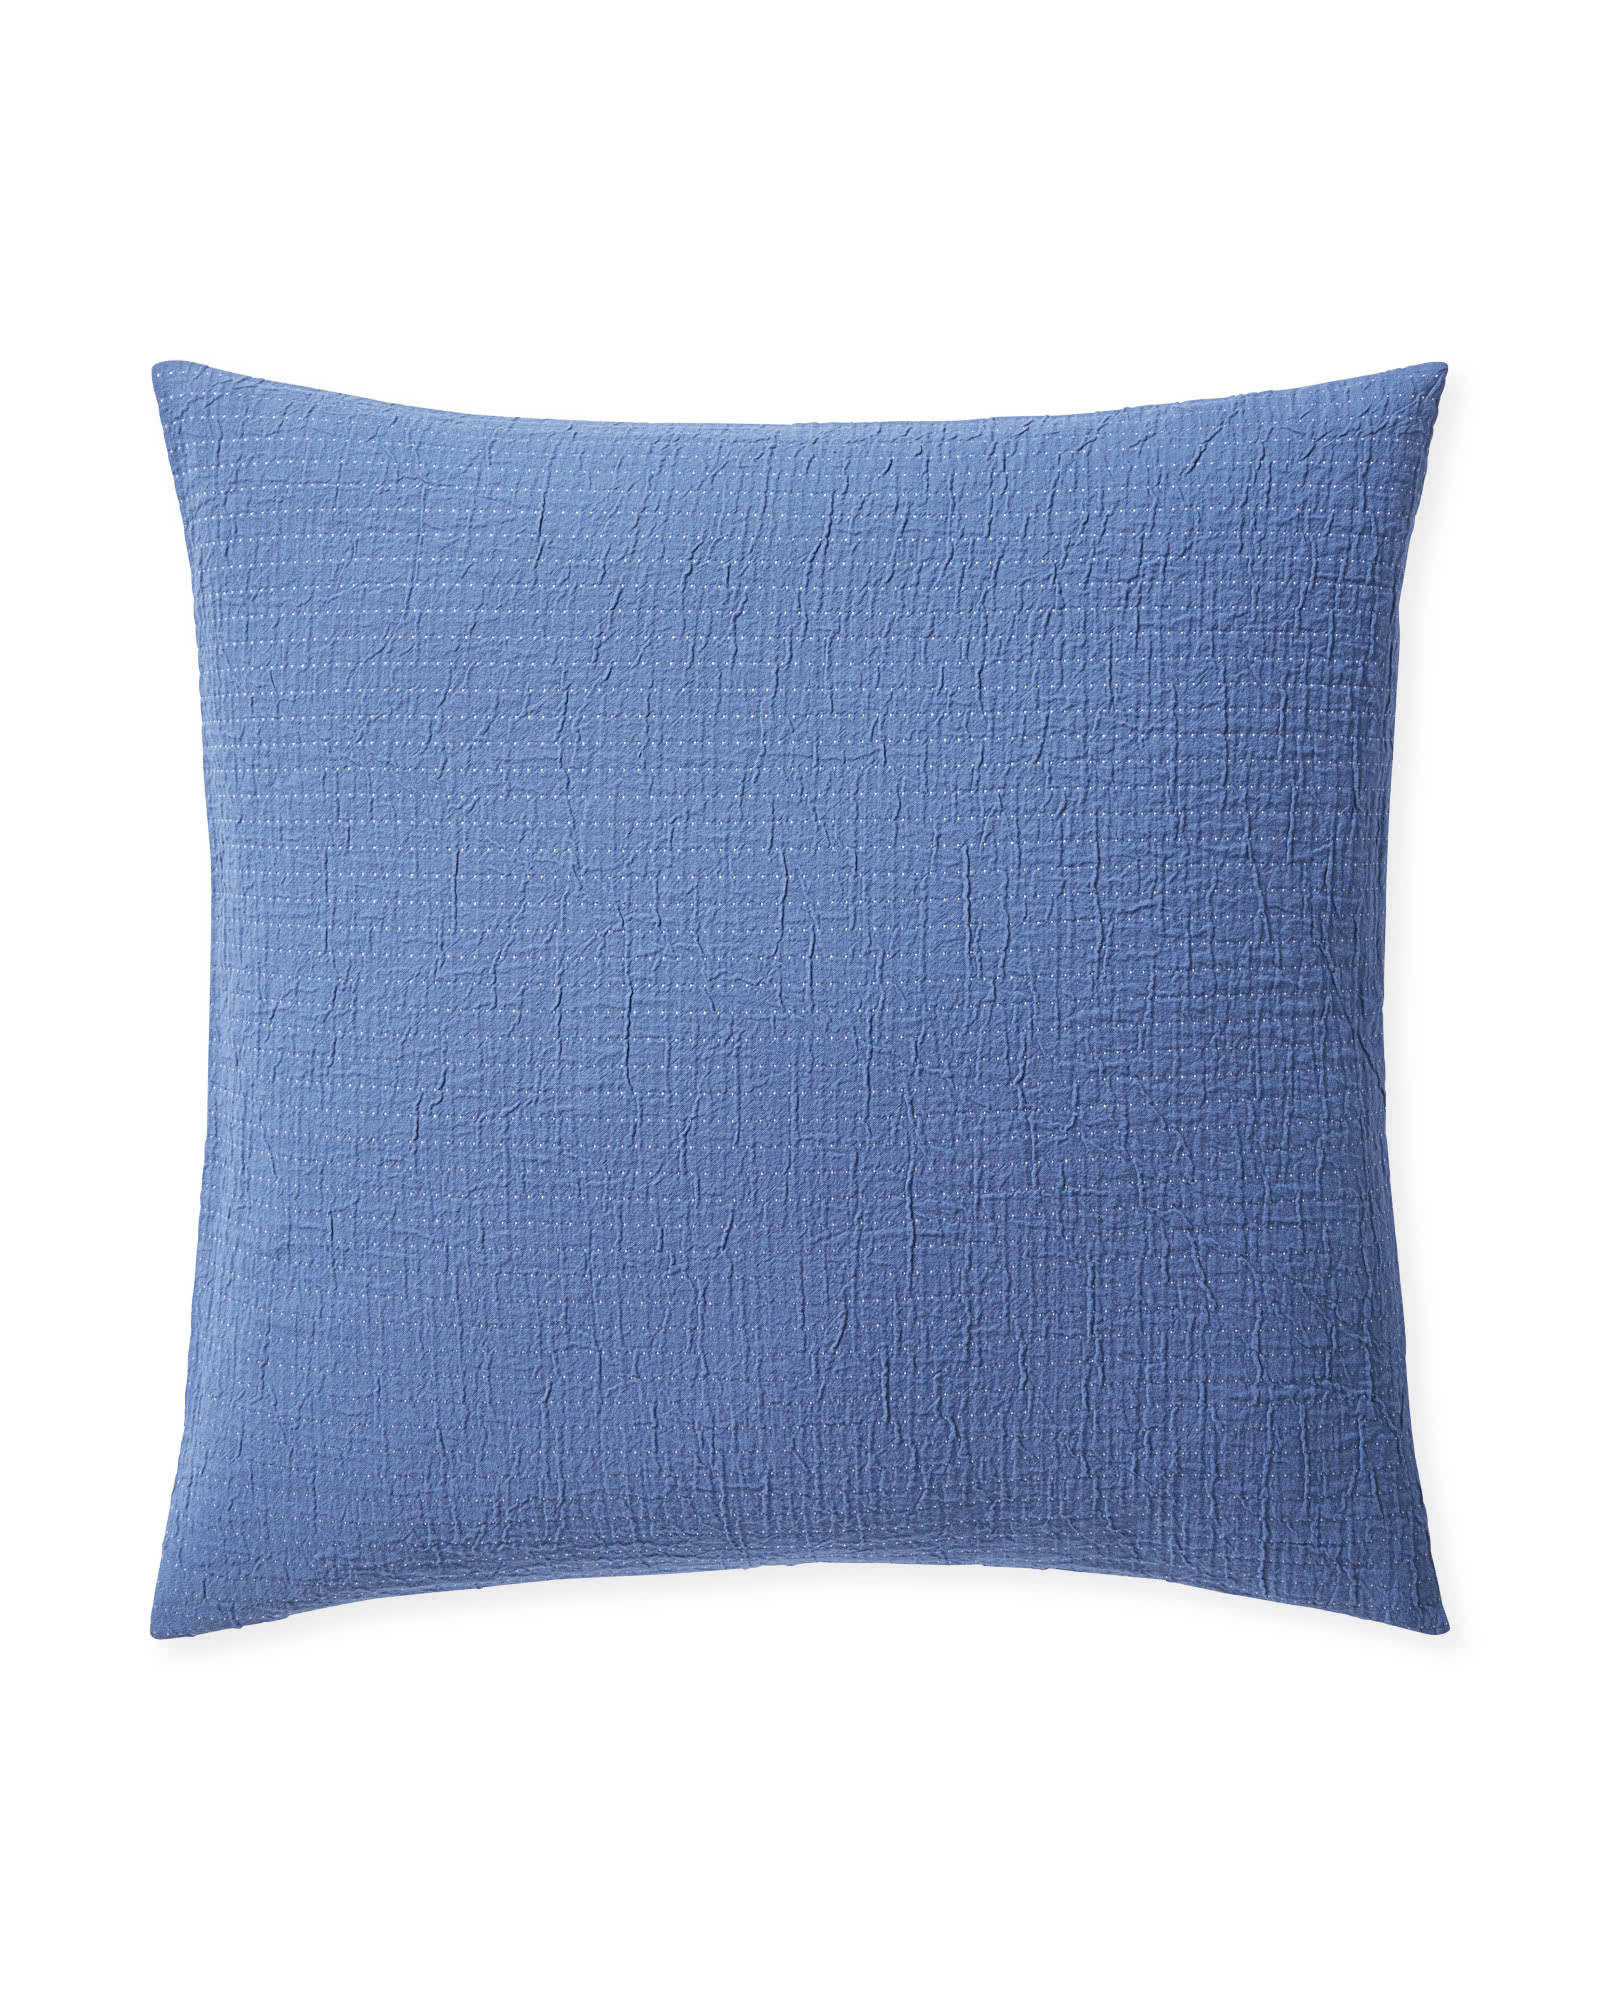 Pickstitch Matelassé Shams, French Blue